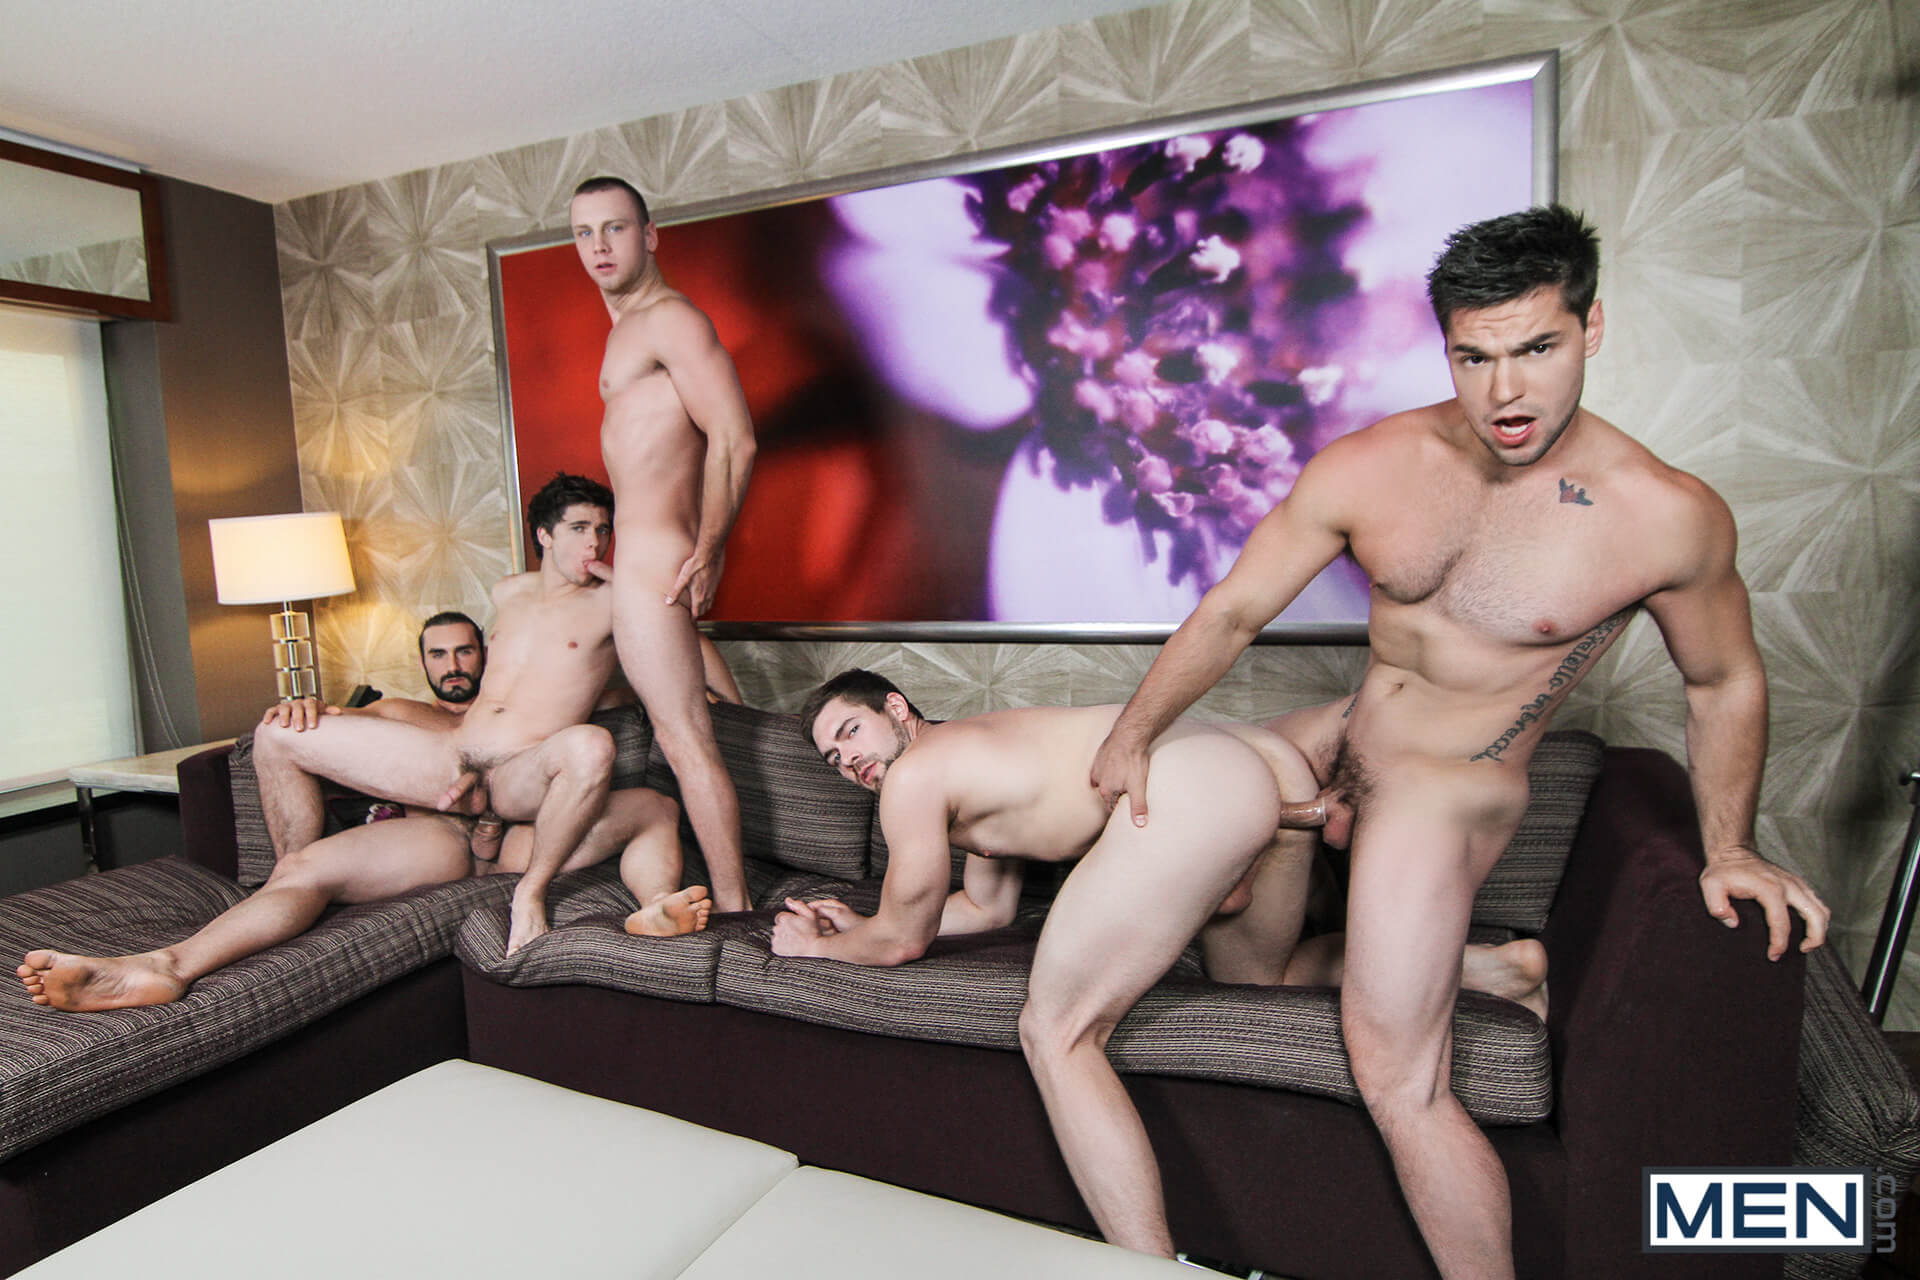 men jizz orgy what happens in vegas part 4 aspen brandon evans griffin barrows jaxton wheeler will braun gay porn blog image 12